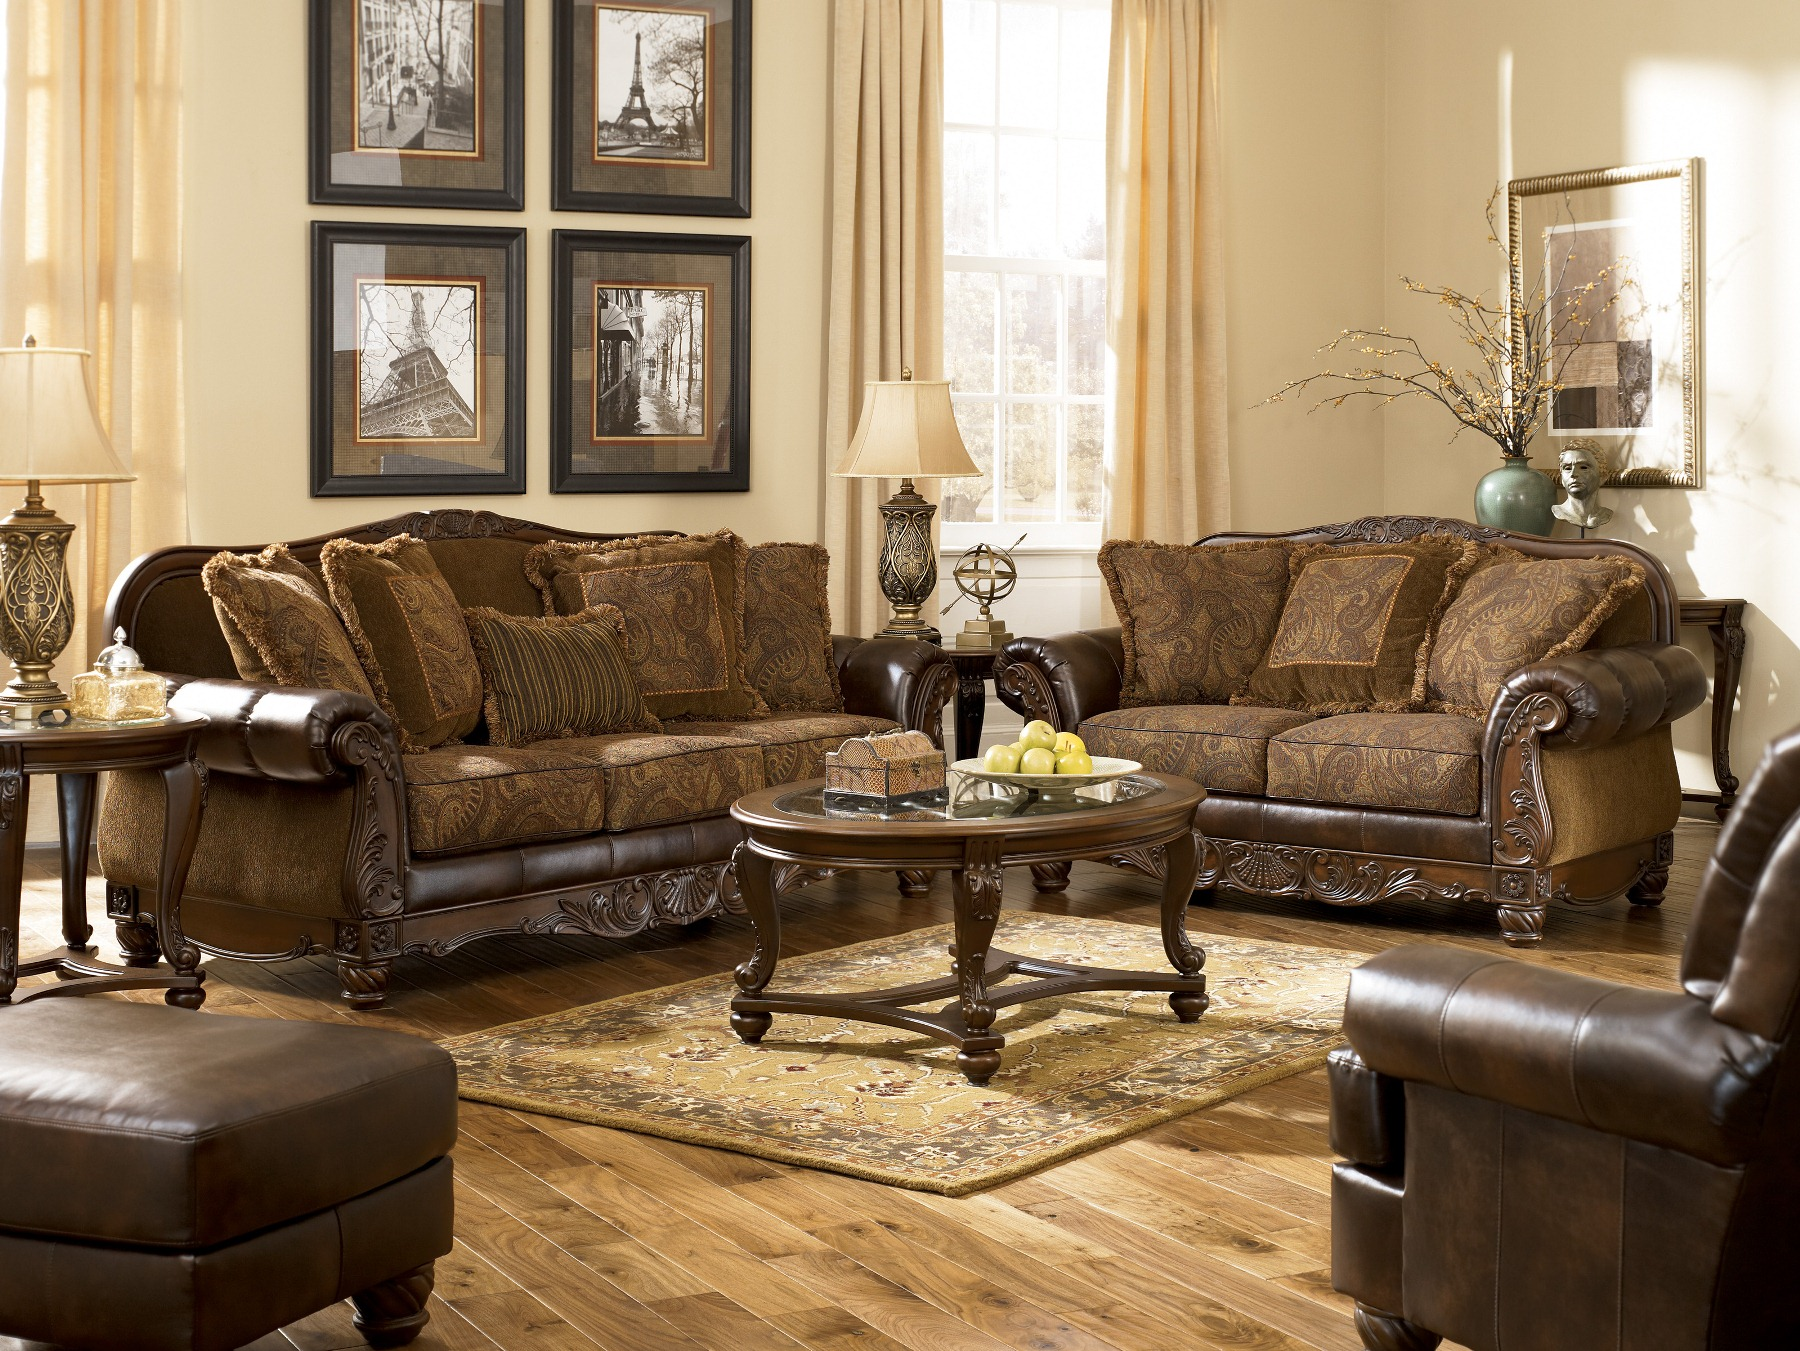 Cool front room furnishings for living room ideas with front room furnishings outlet